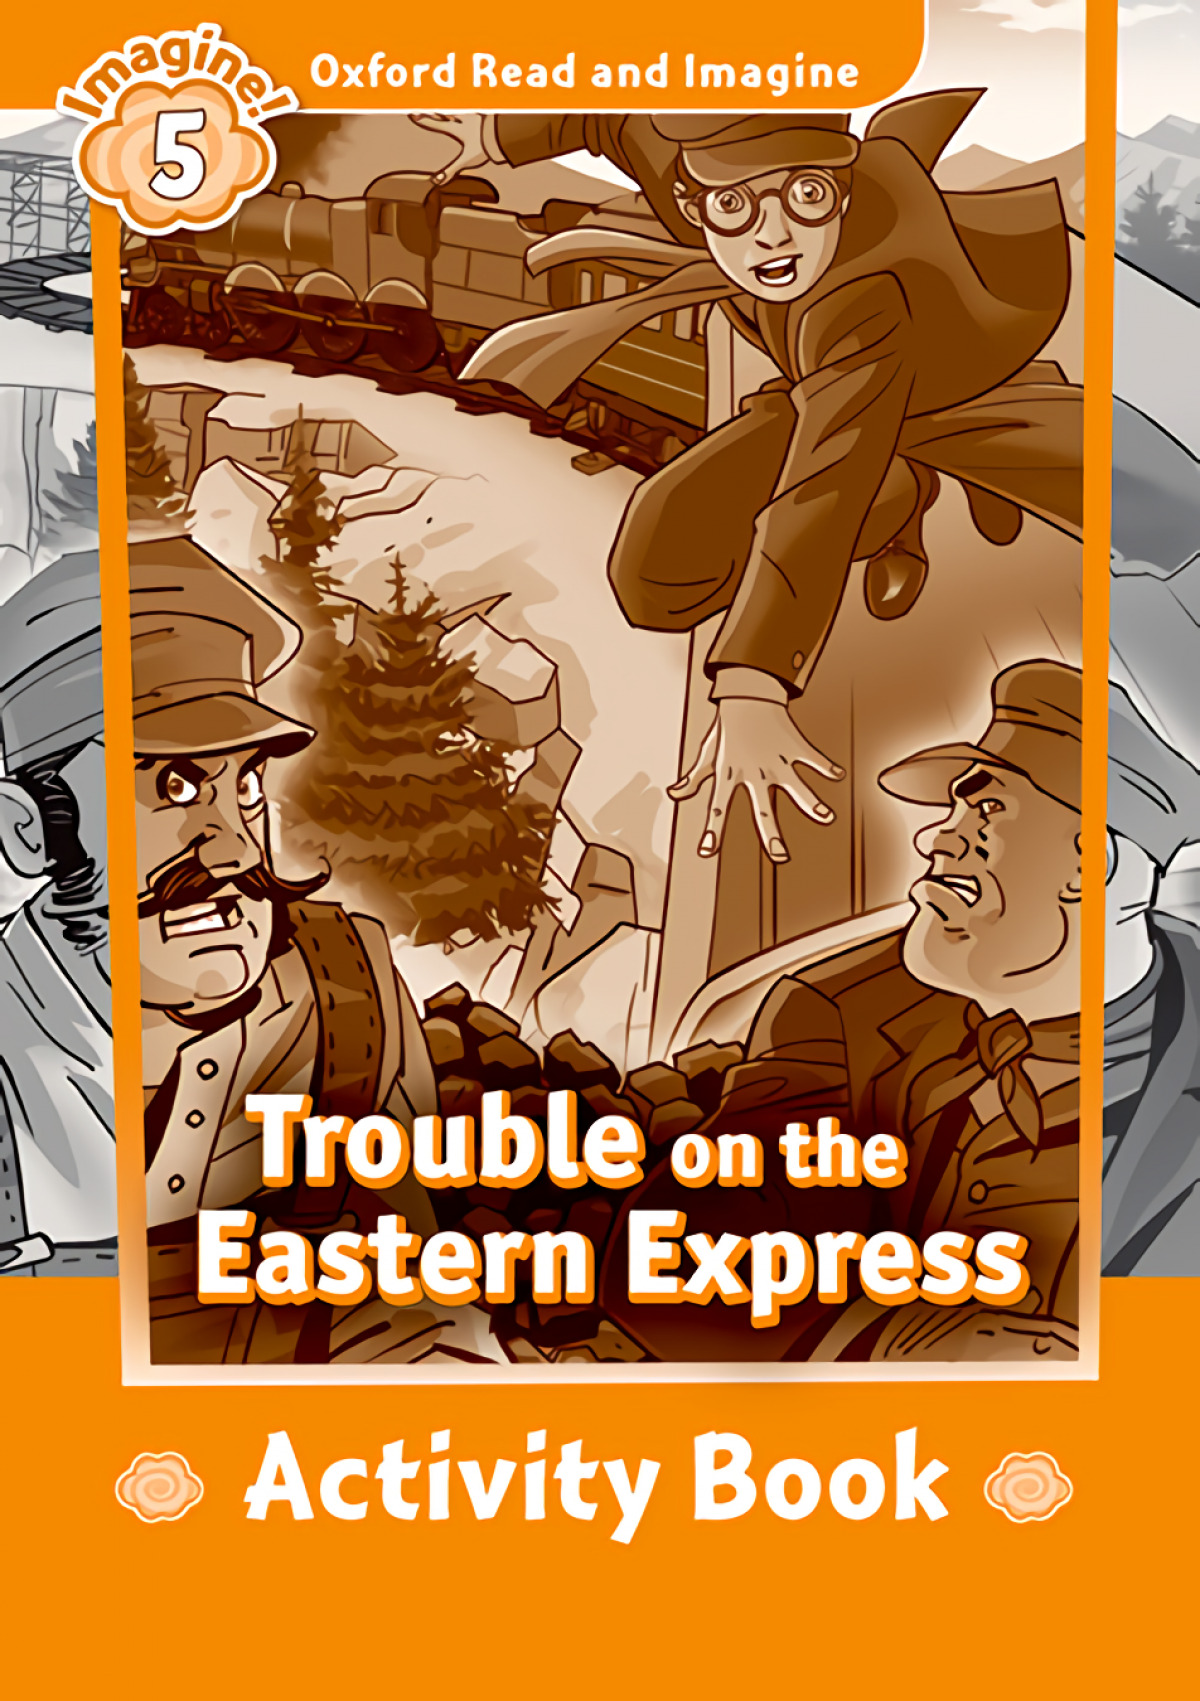 Oxford Read and Imagine 5. Trouble on Eastern Express Activi